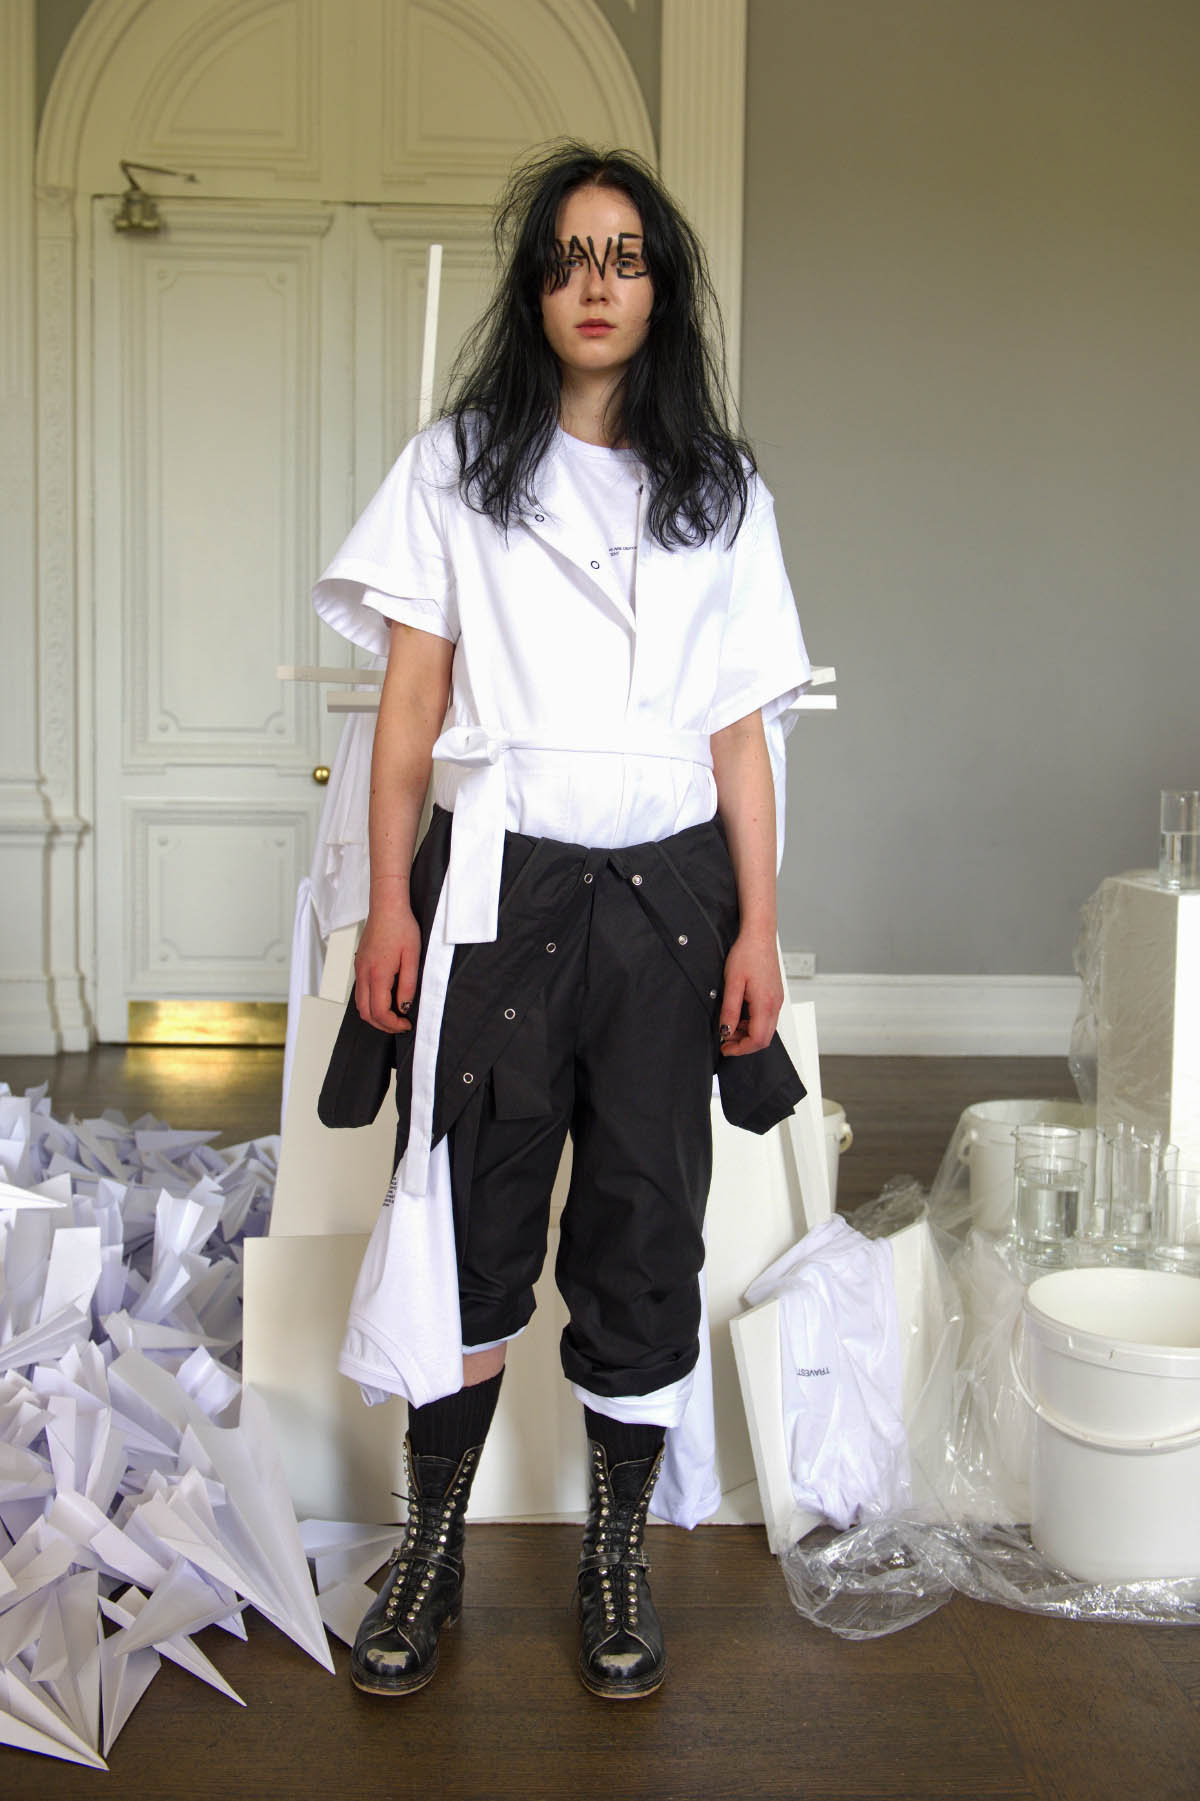 004B PHOEBE ENGLISH SS17 LOOK 5 - THE CHANTER.jpg